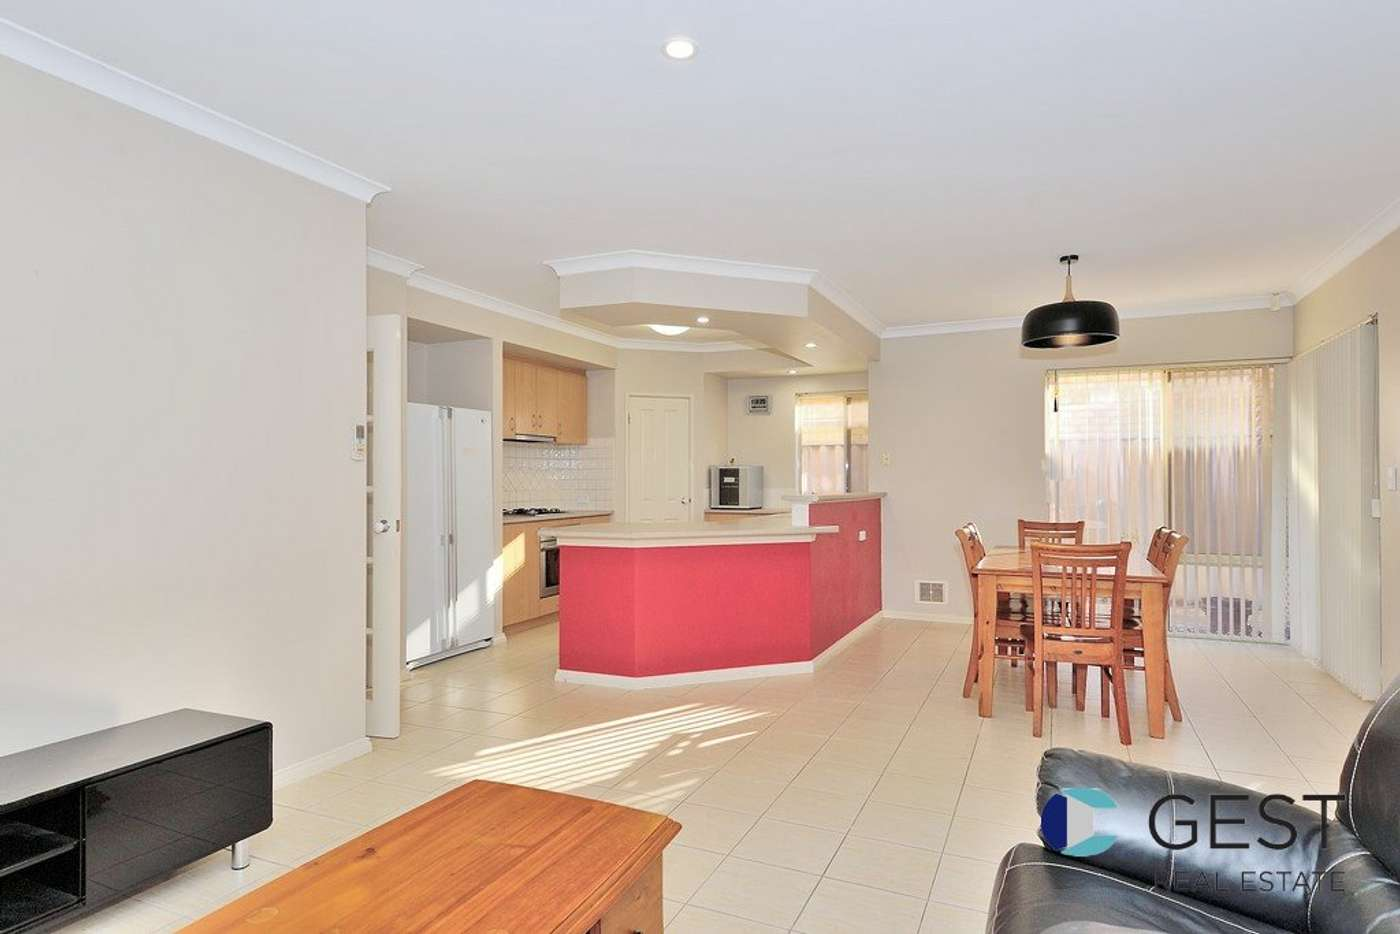 Main view of Homely house listing, 25 STANBURY CRESCENT, Morley WA 6062